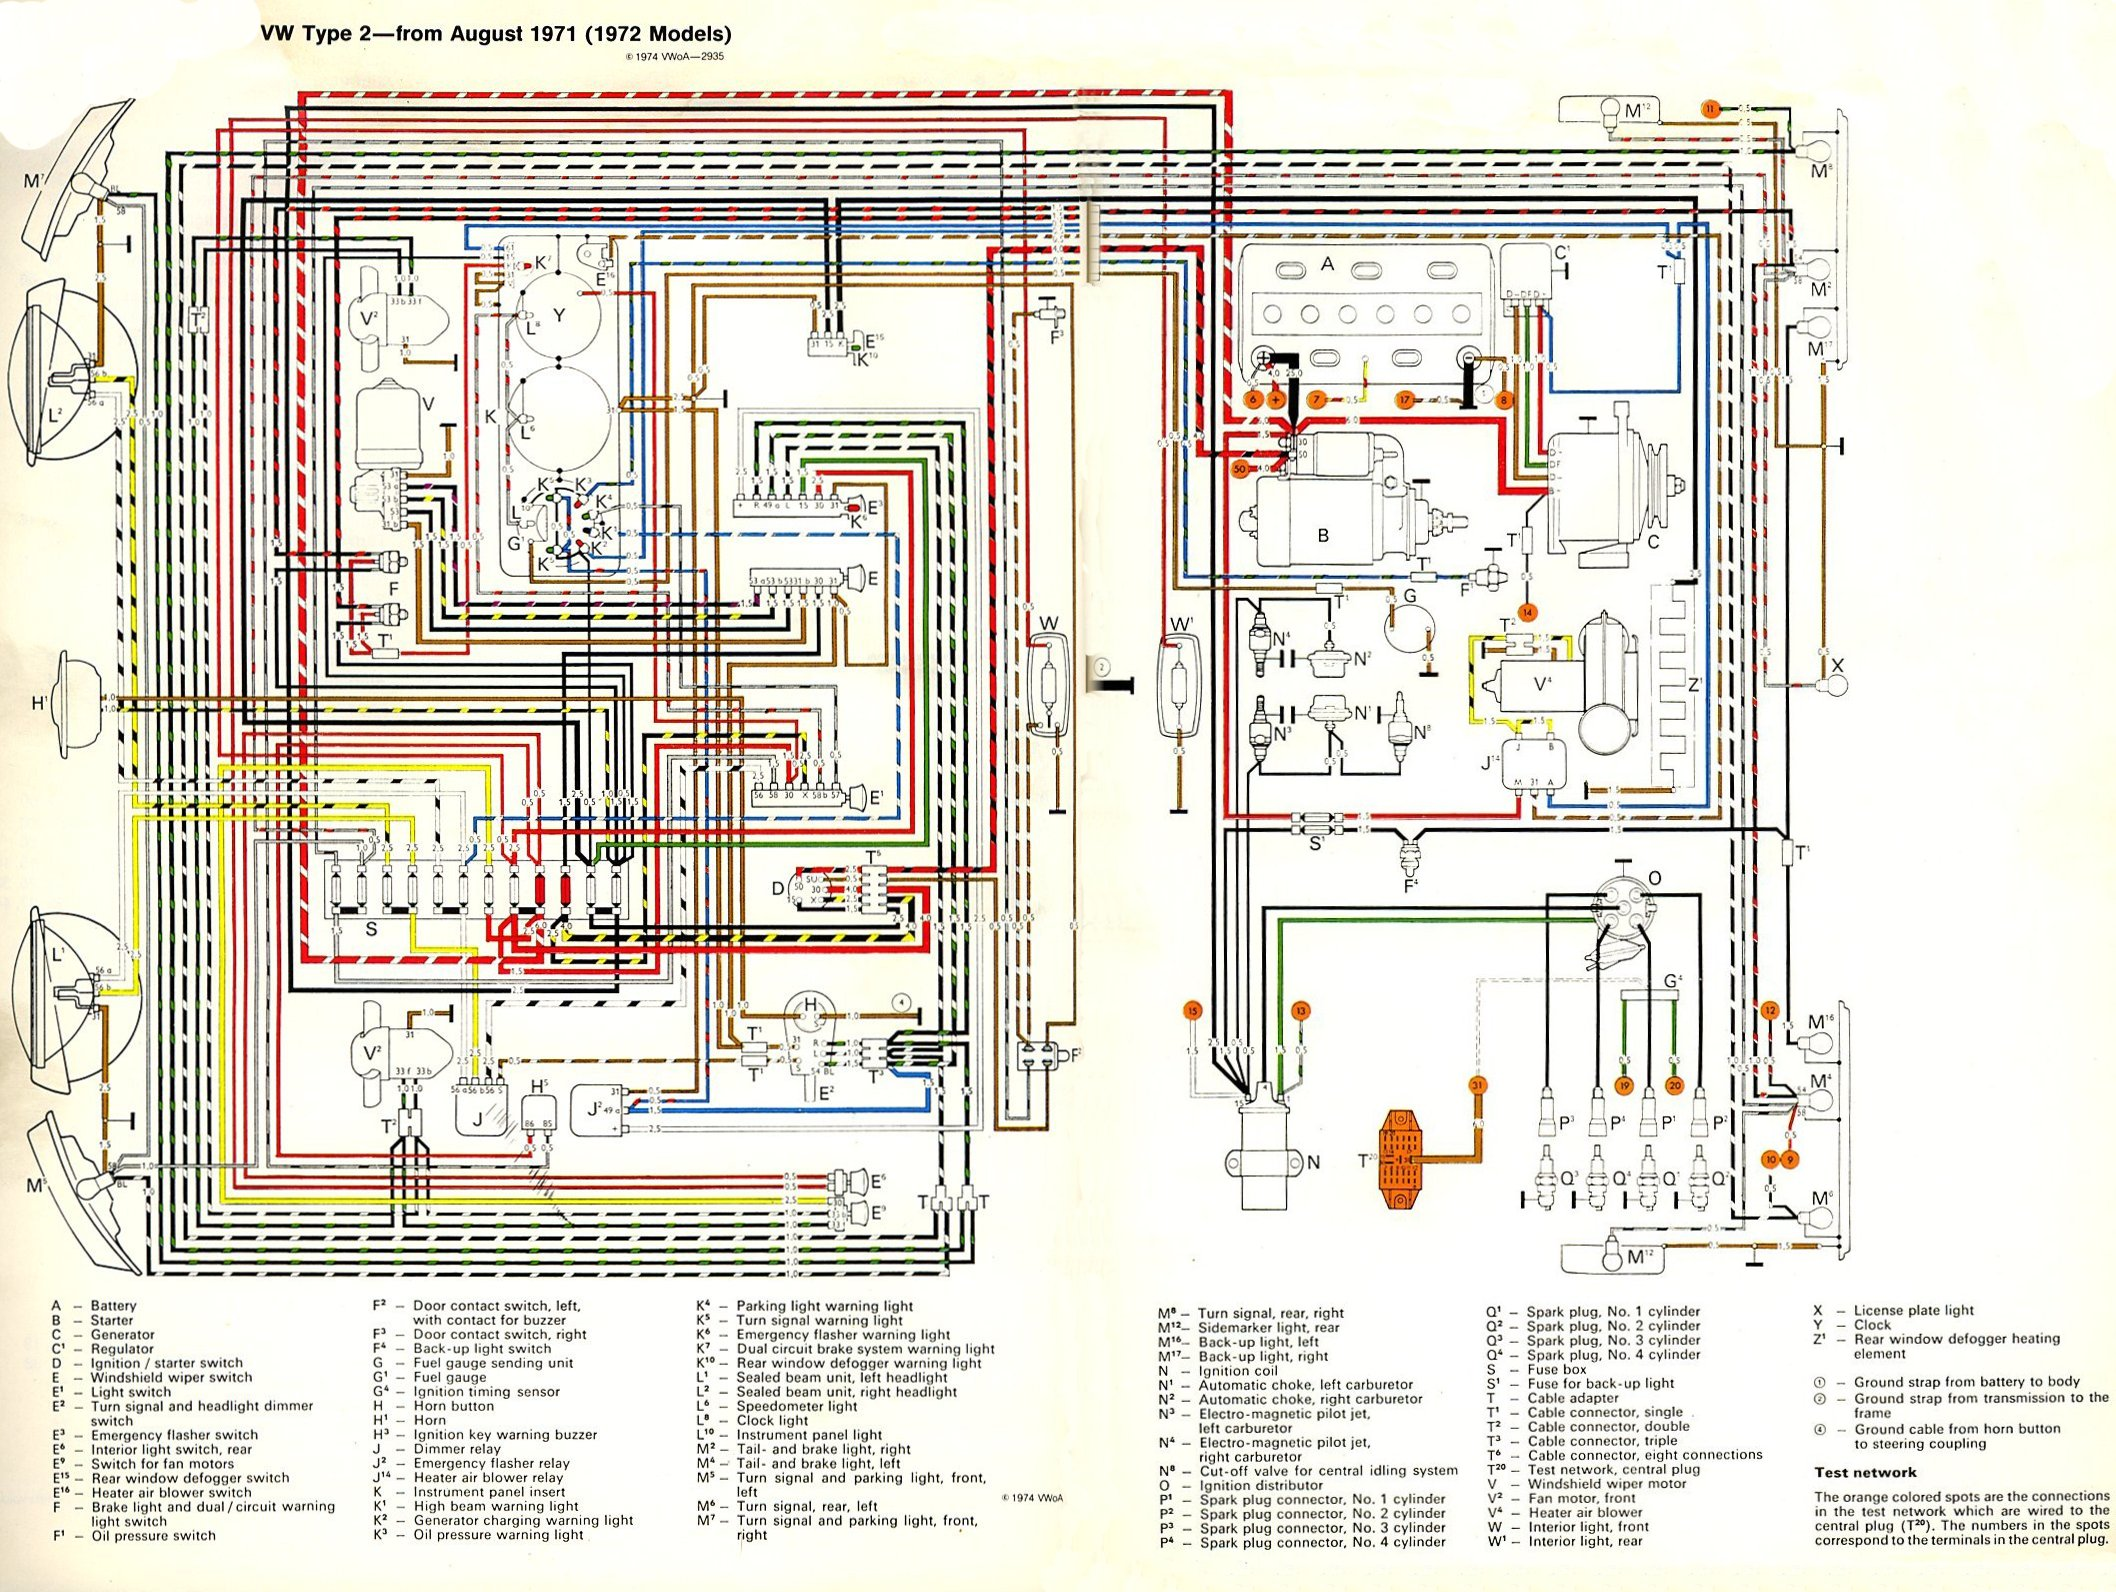 bus_1972_wiring wiring diagram for 1971 vw bus readingrat net 1971 vw bus wiring diagram at cos-gaming.co